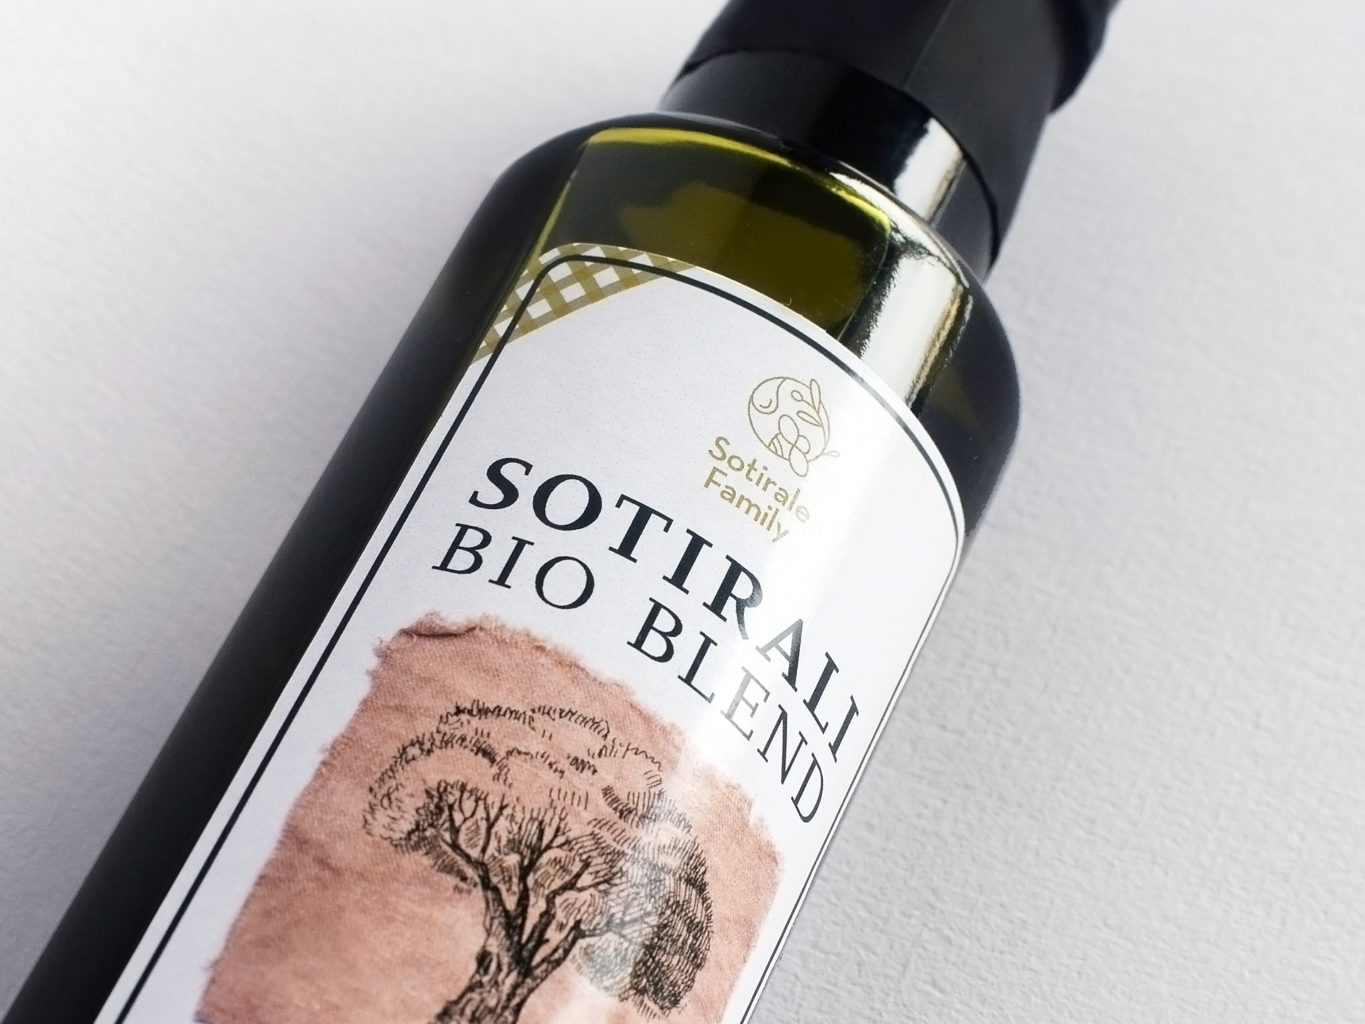 Sotirale Family extra virgin olive oil packaging